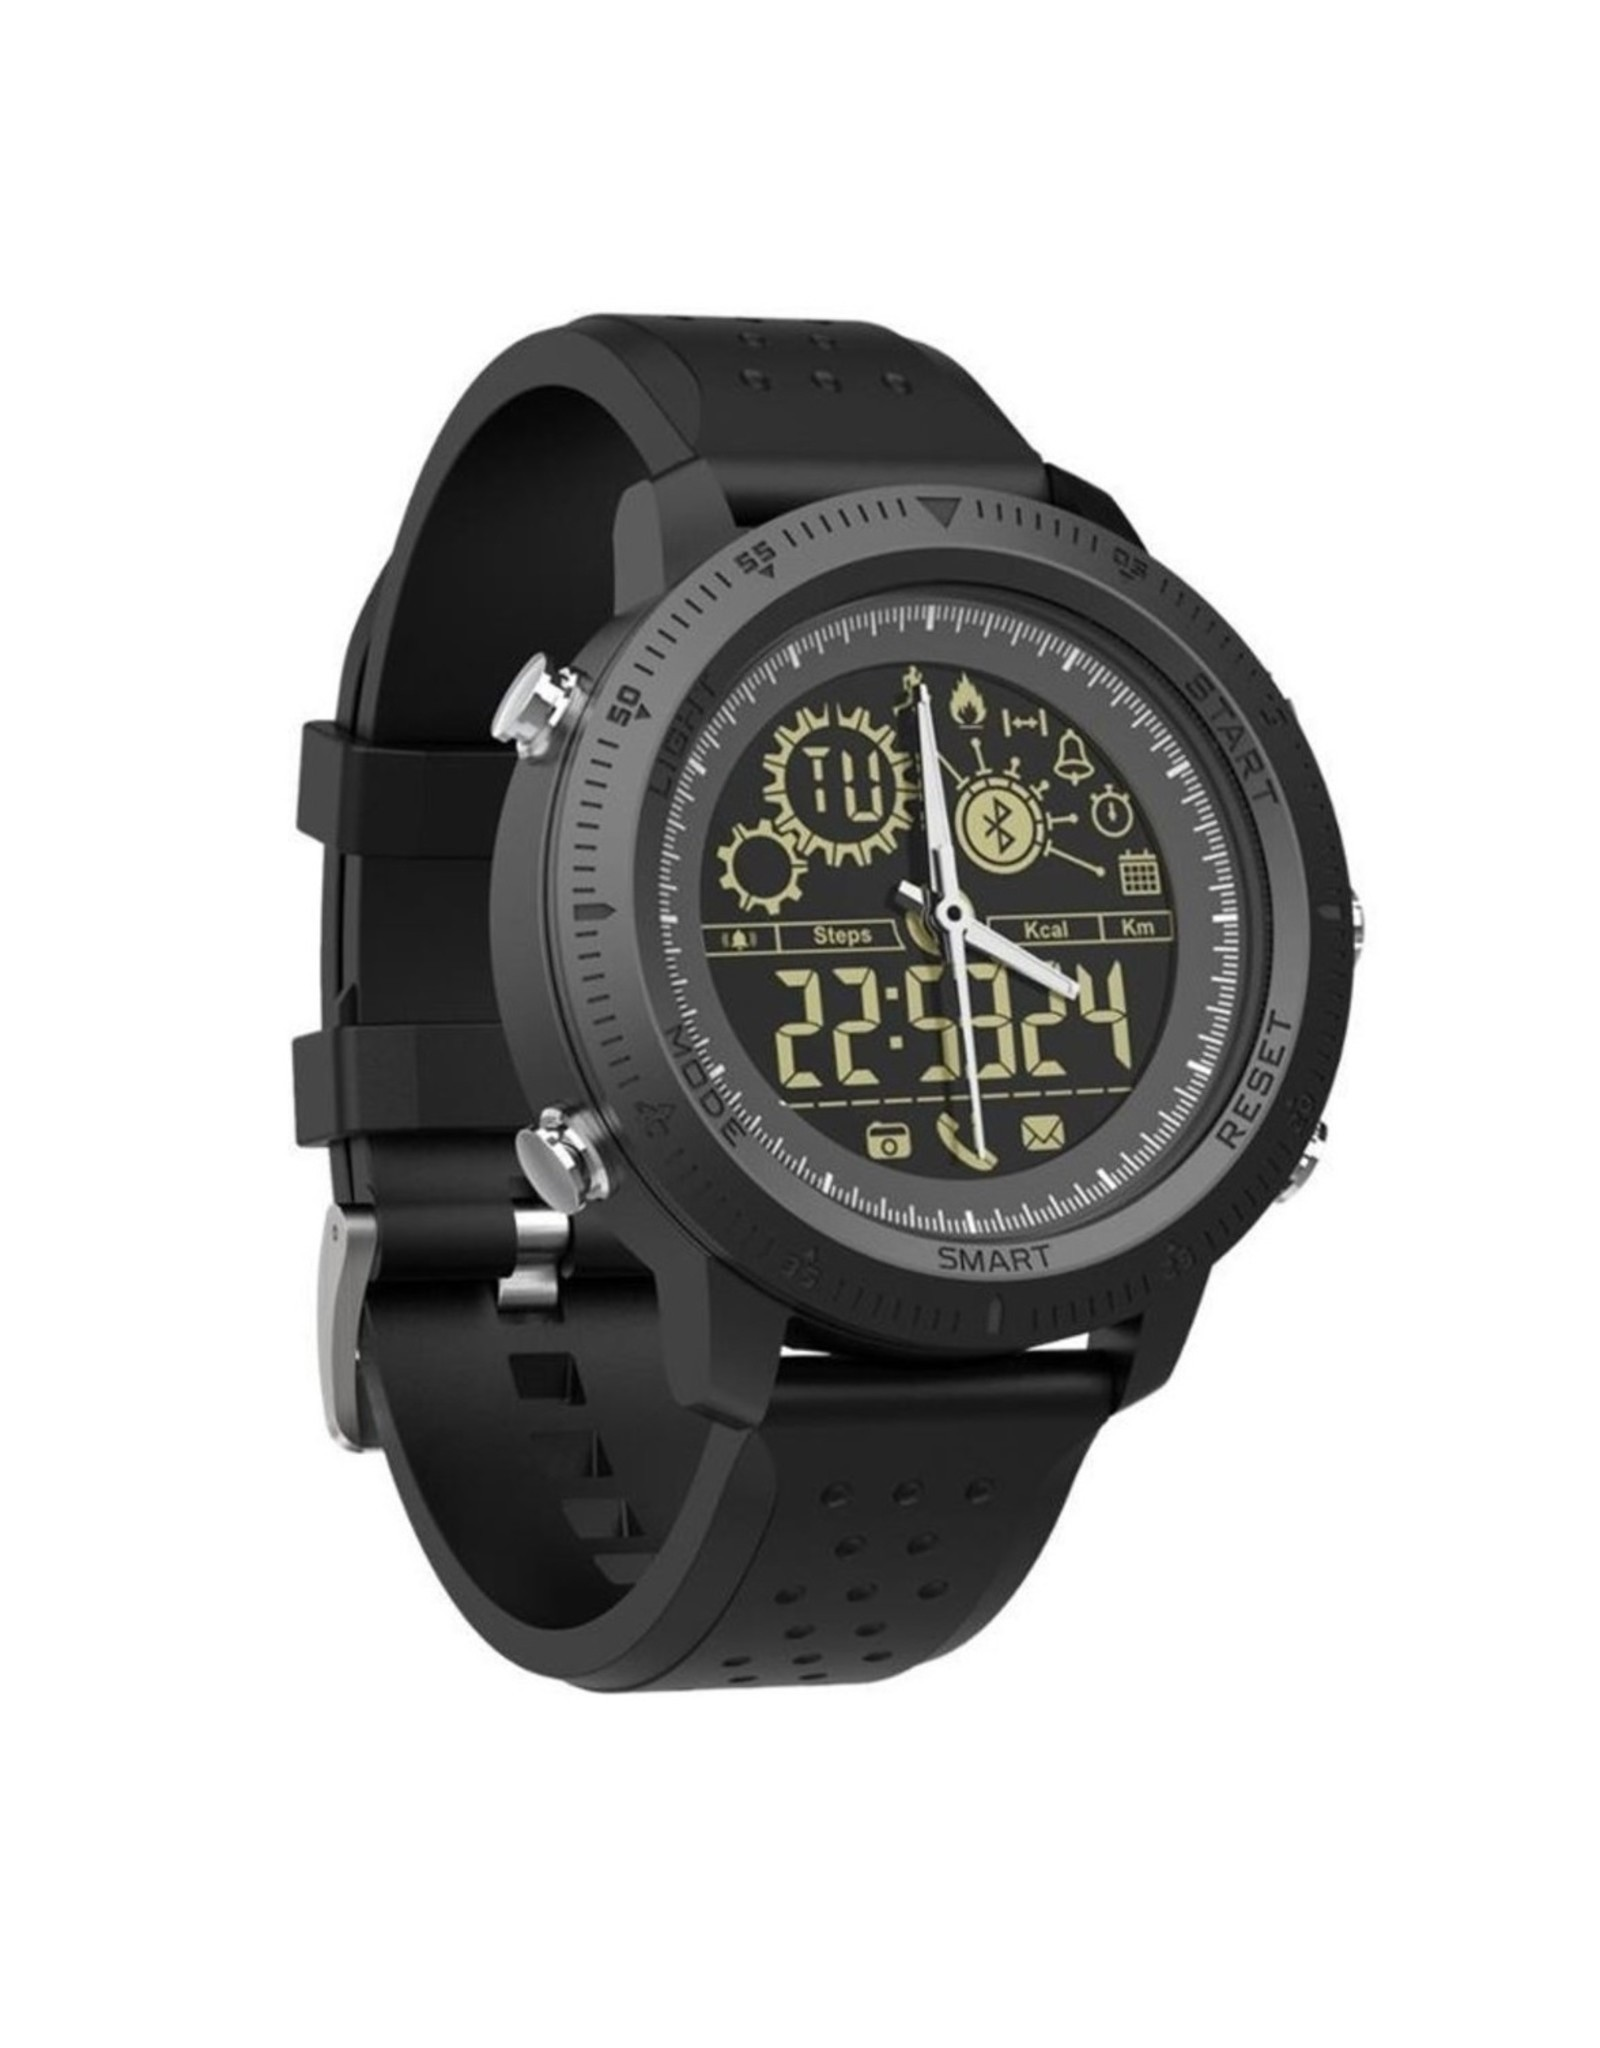 Parya Official Parya Official - Tactical Military Smartwatch